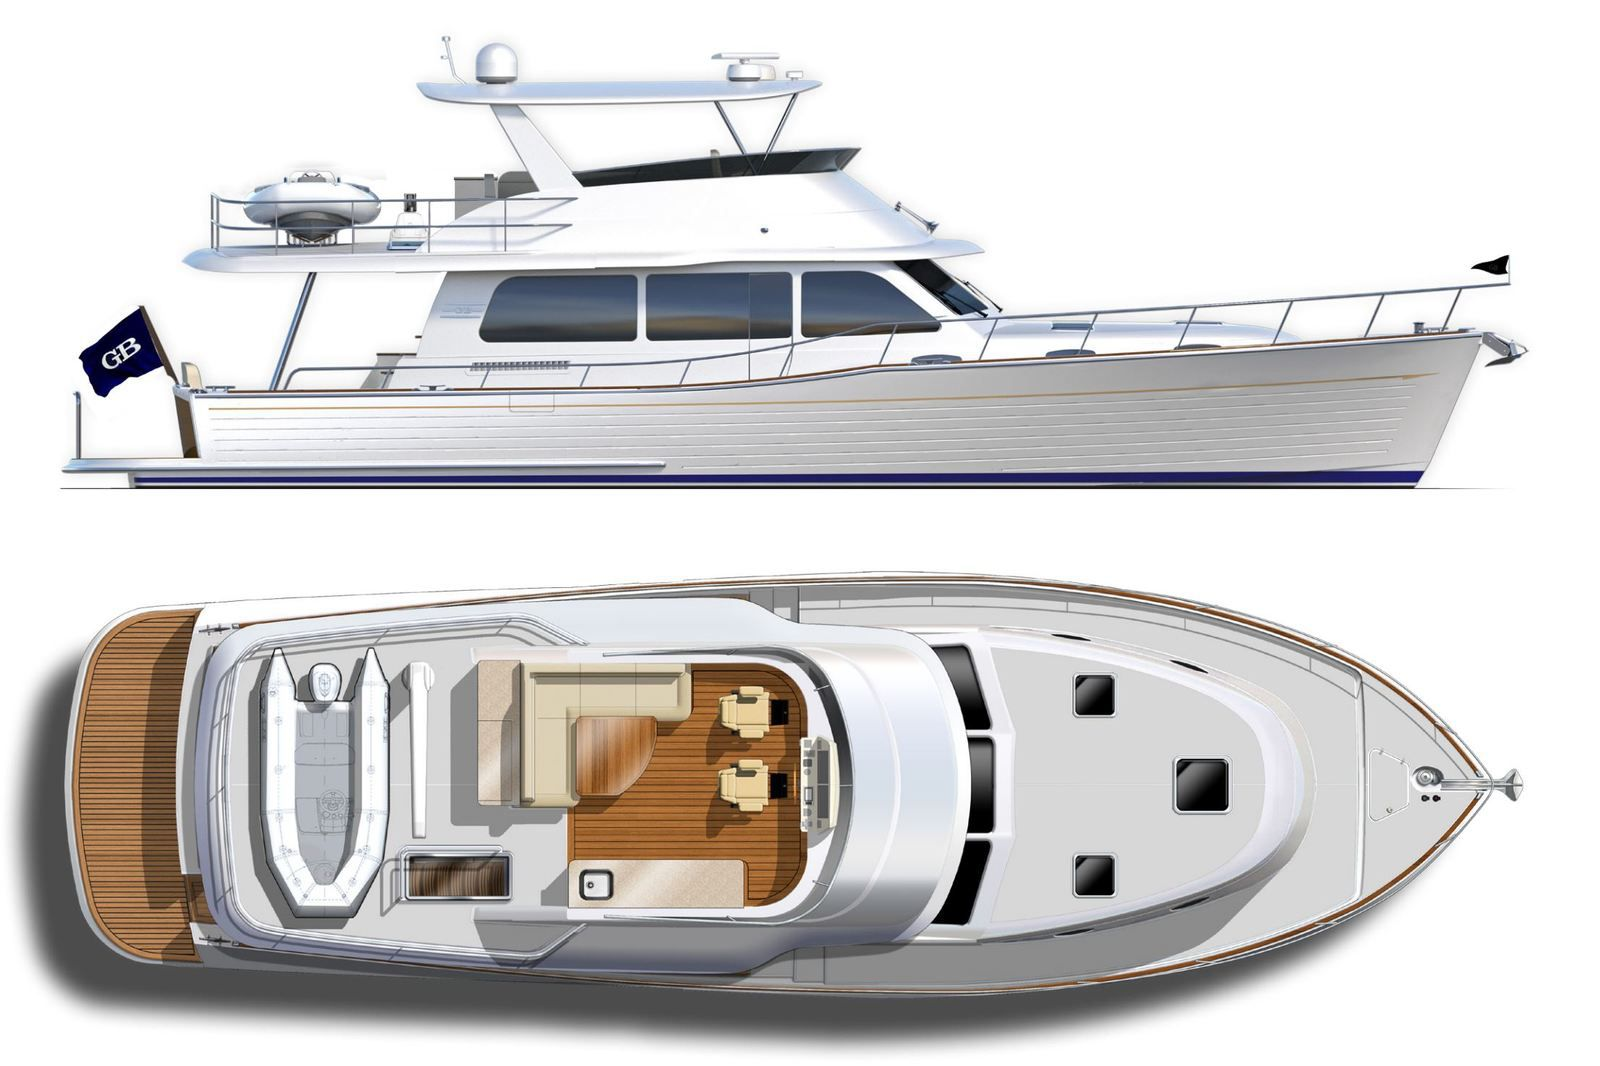 The layout of the new Grand Banks 54 (GB54) unveiled on Yachting Art!